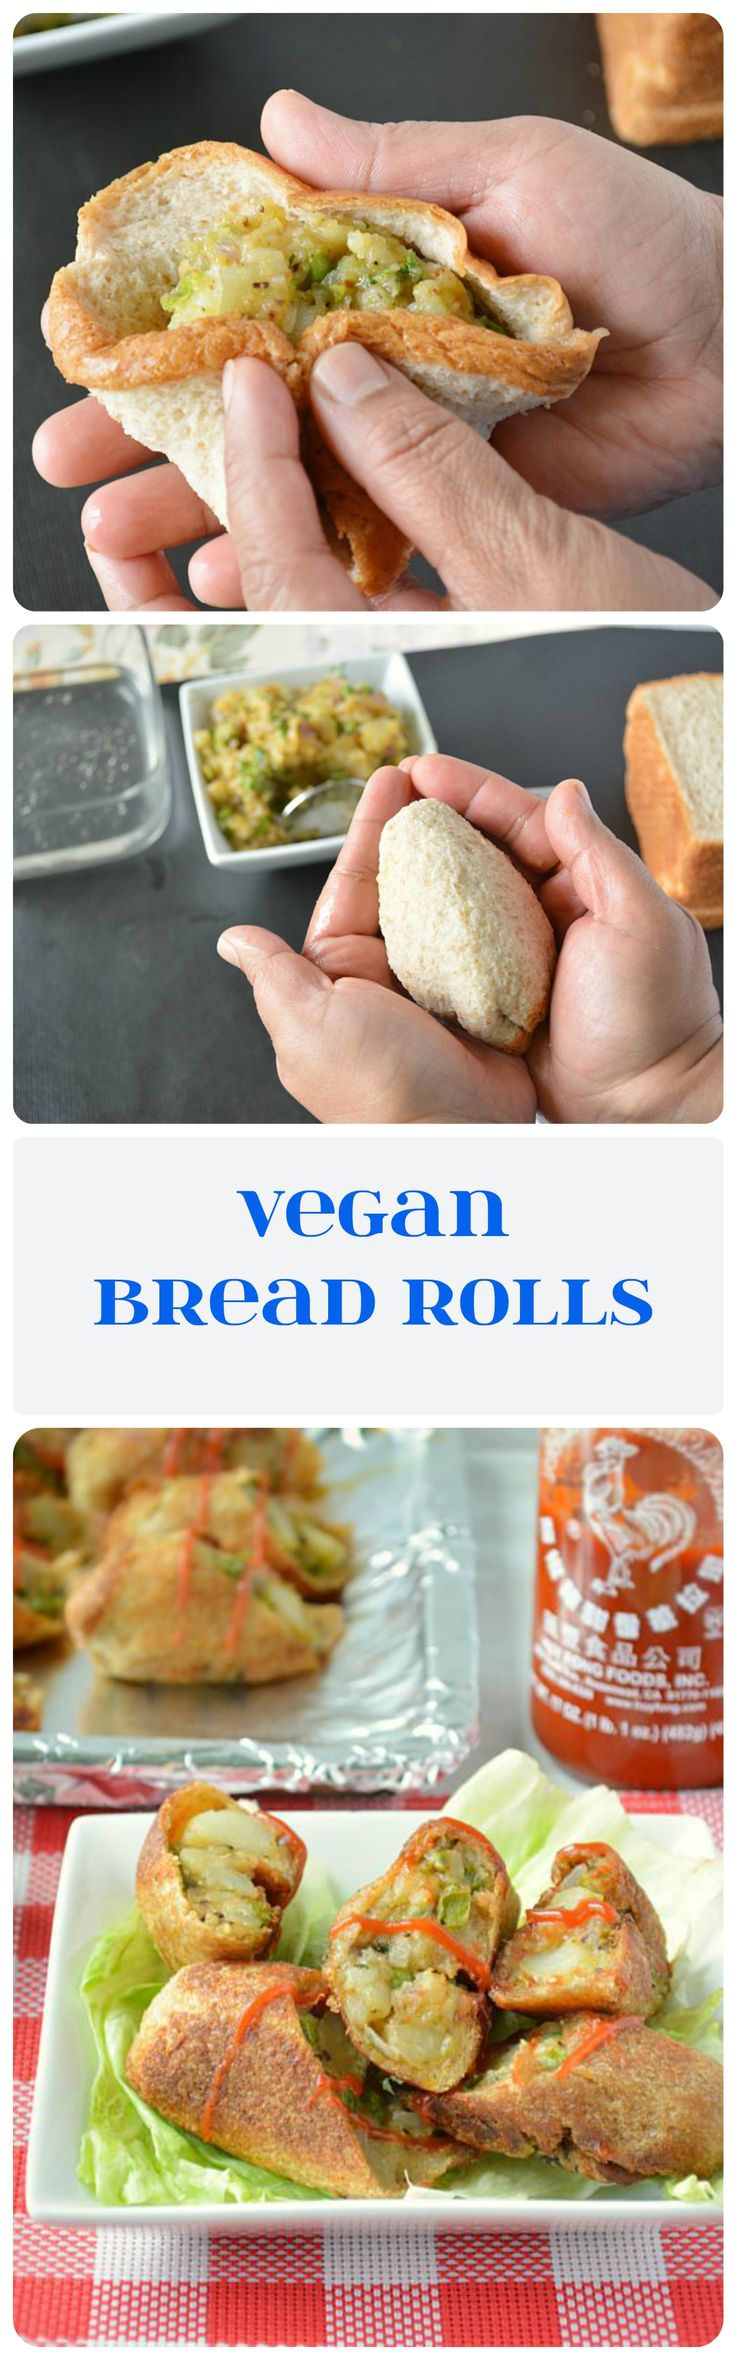 mens clothing Still thinking about a healthy  breakfast  recipe  Non fried bread rolls stuffed with  potatoes  C pea mixture is a healthy   delicious and  tasty breakfast recipe   breadrolls  bread  indiancuisine  cooking  vegan  vegetarian  vegetarianbreakfast  indianbreakfast